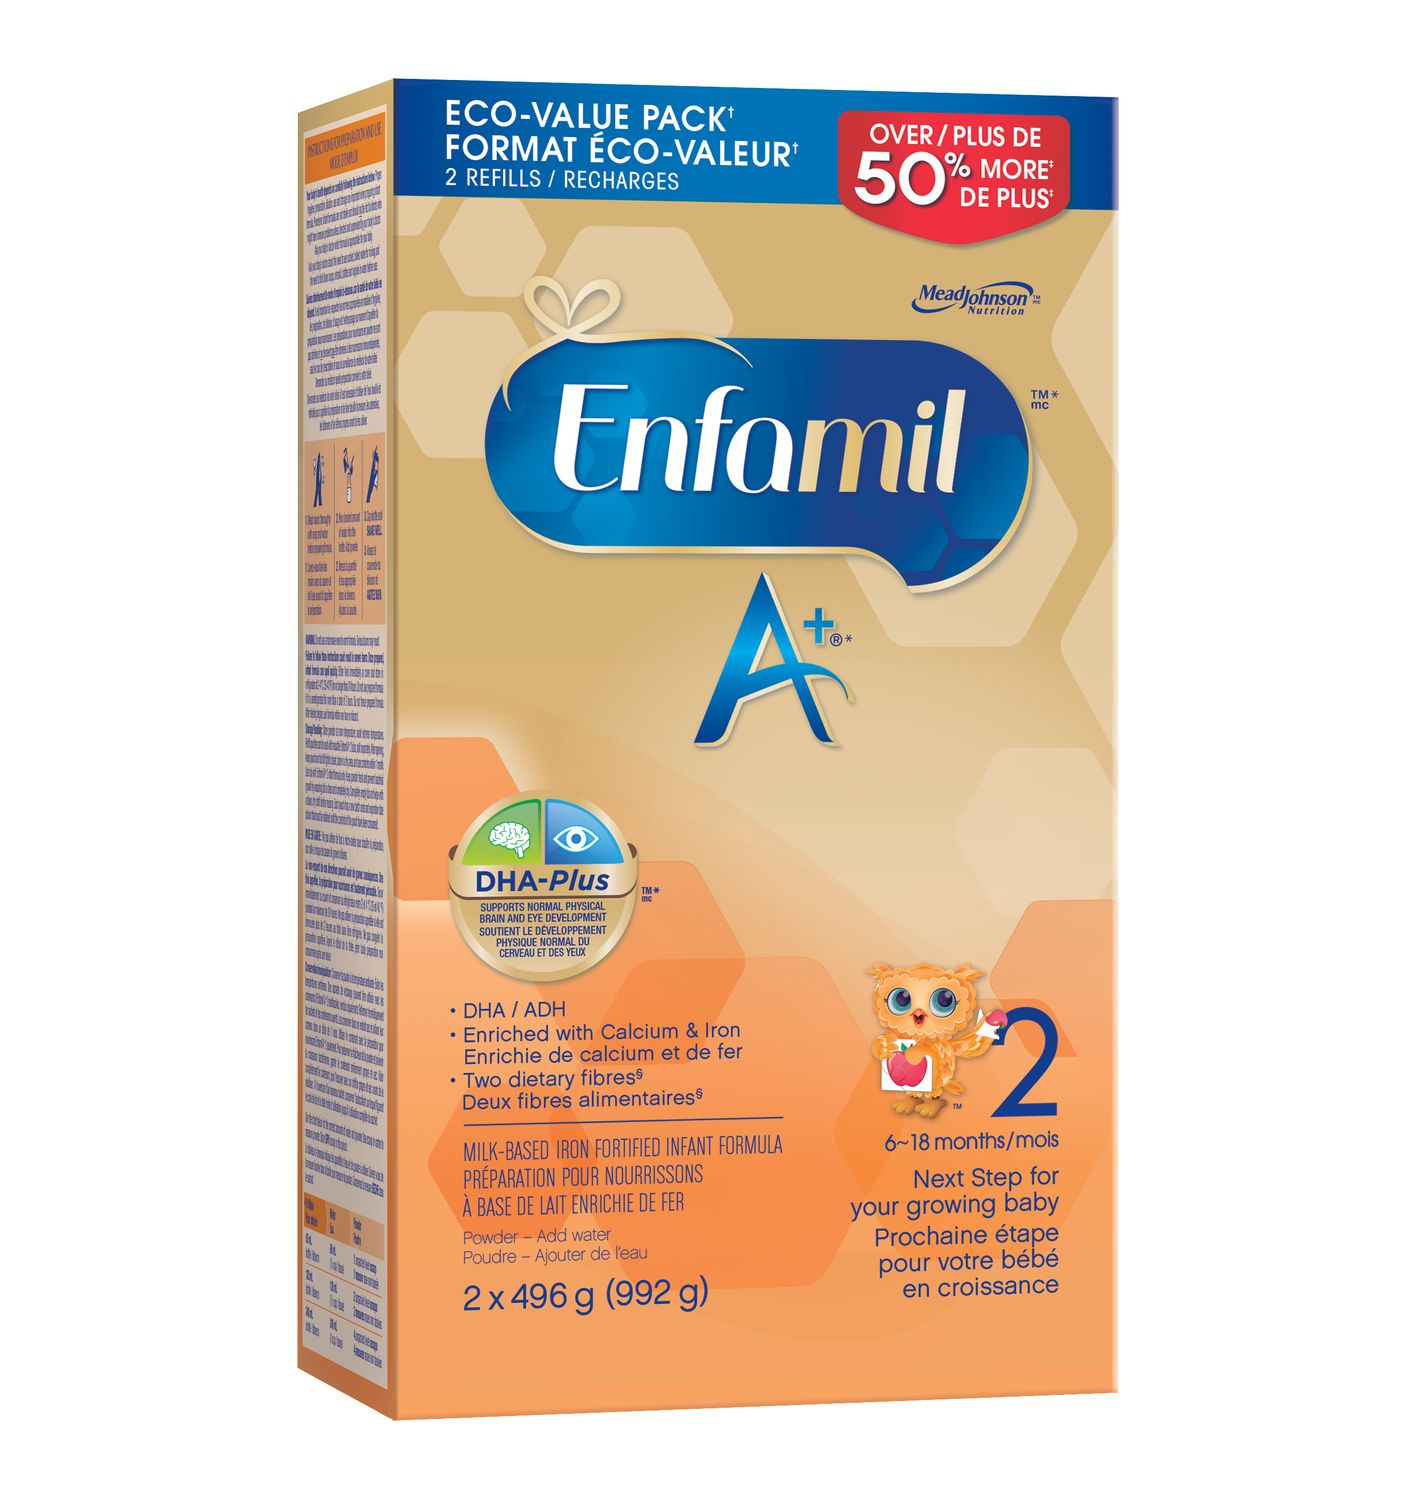 Printable Coupons Enfamil Baby Formula - Free Printable Similac Baby Formula Coupons